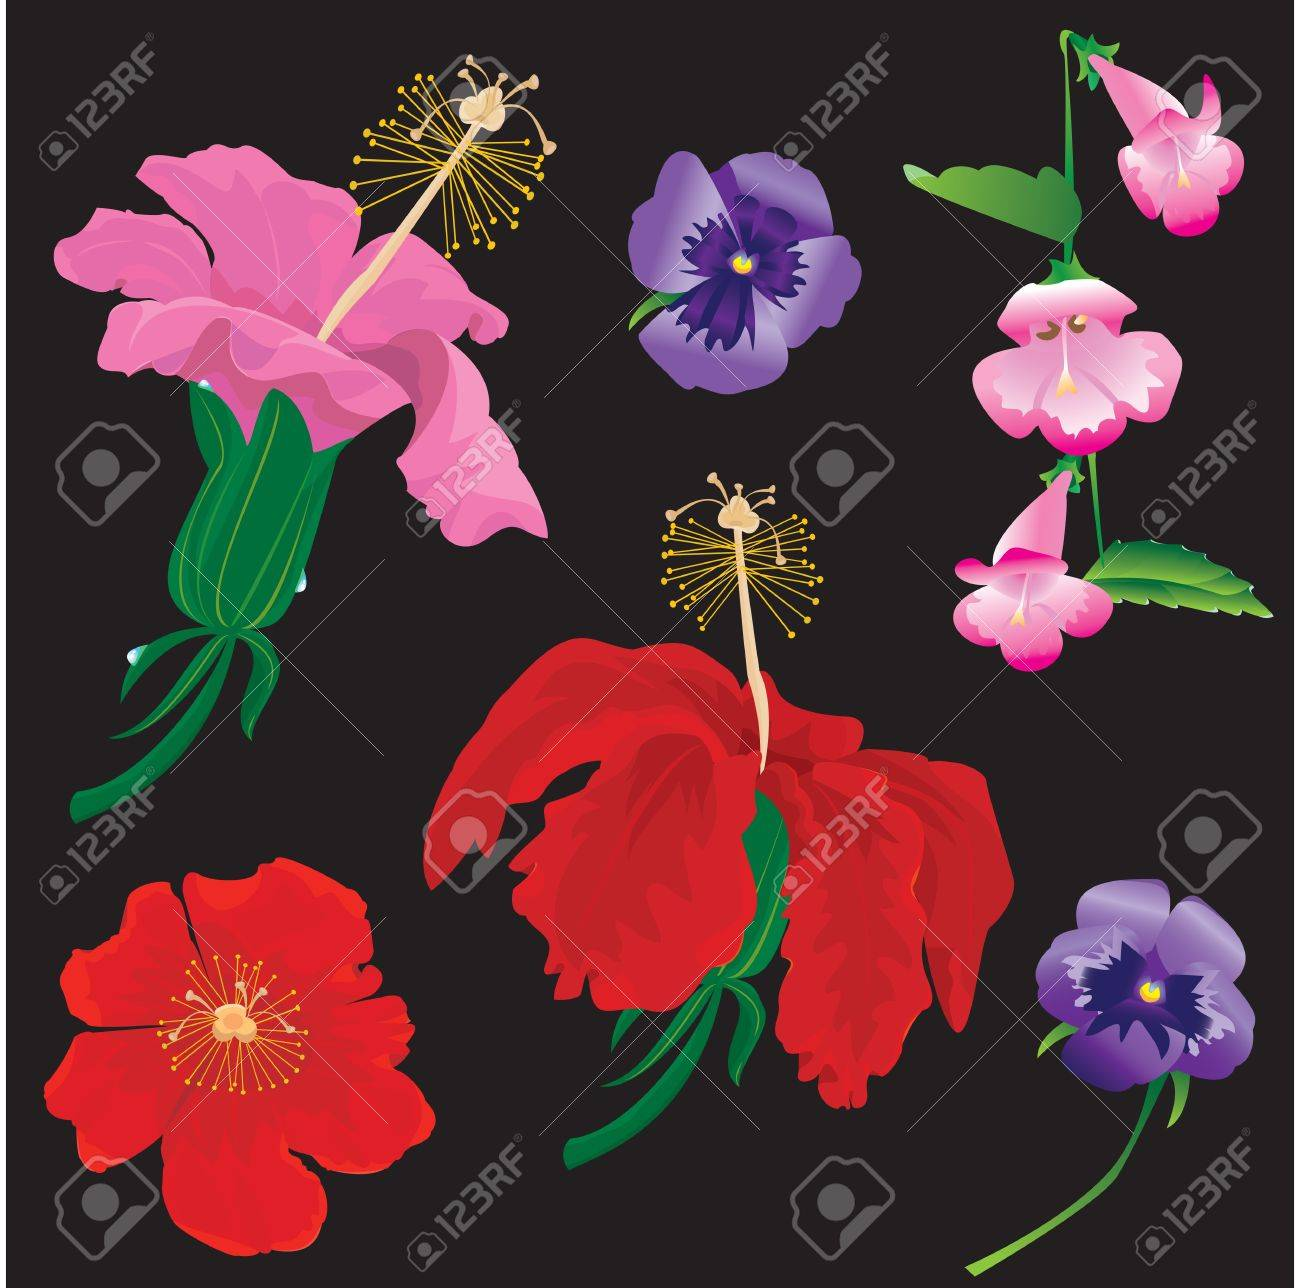 Set of Flowers bloom - hibiscus, violet, convolvulus - on black background Stock Vector - 12199140